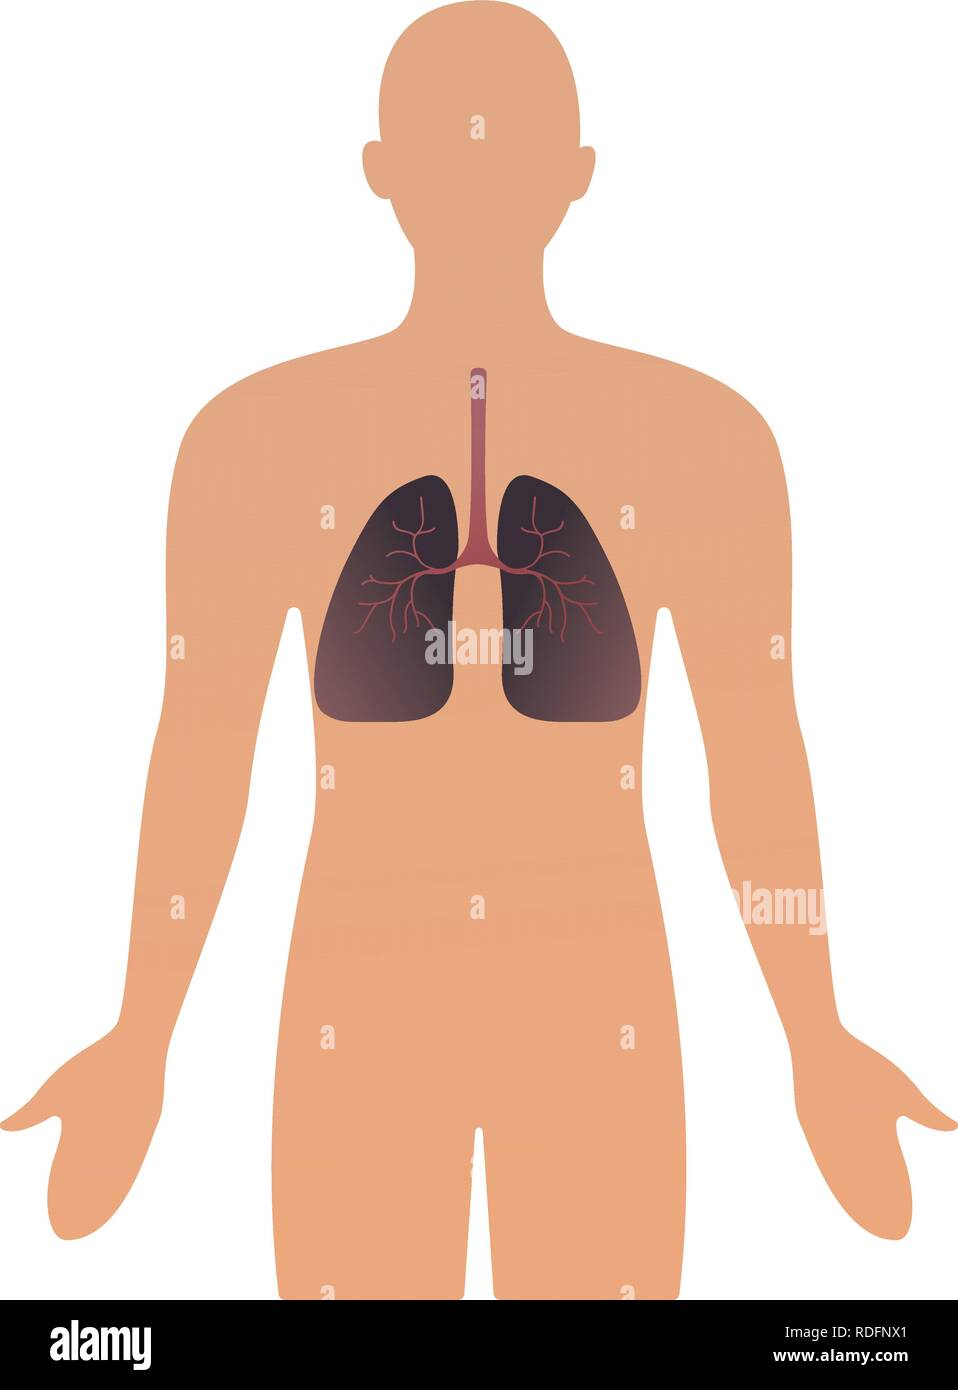 Human organs vector illustration. human anatomical man silhouette with organ. lungs. illustration concept Healthcare. - Stock Image